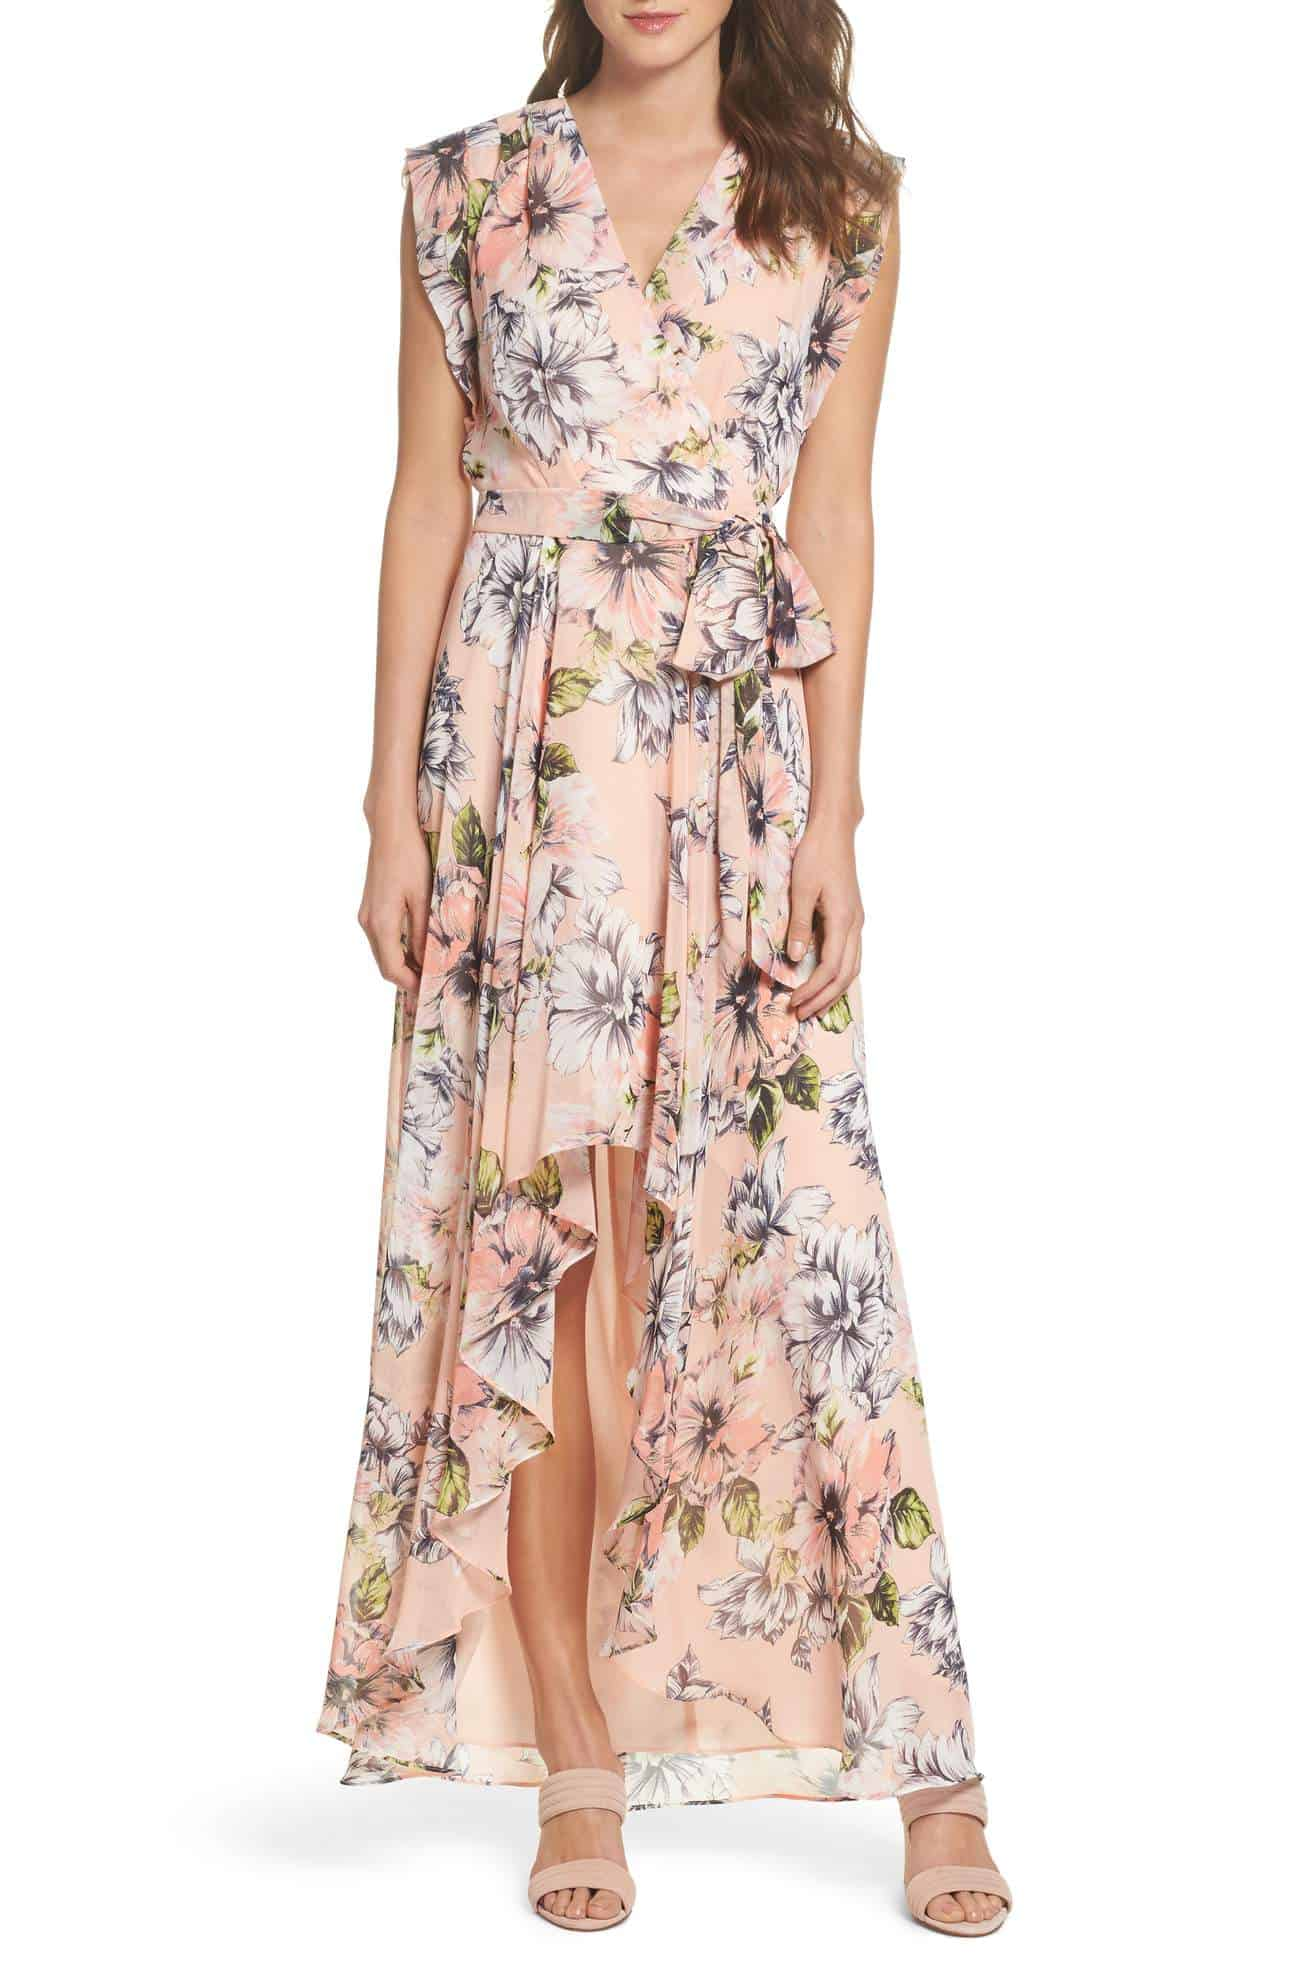 Peach Floral Print Ruffle Maxi Dress